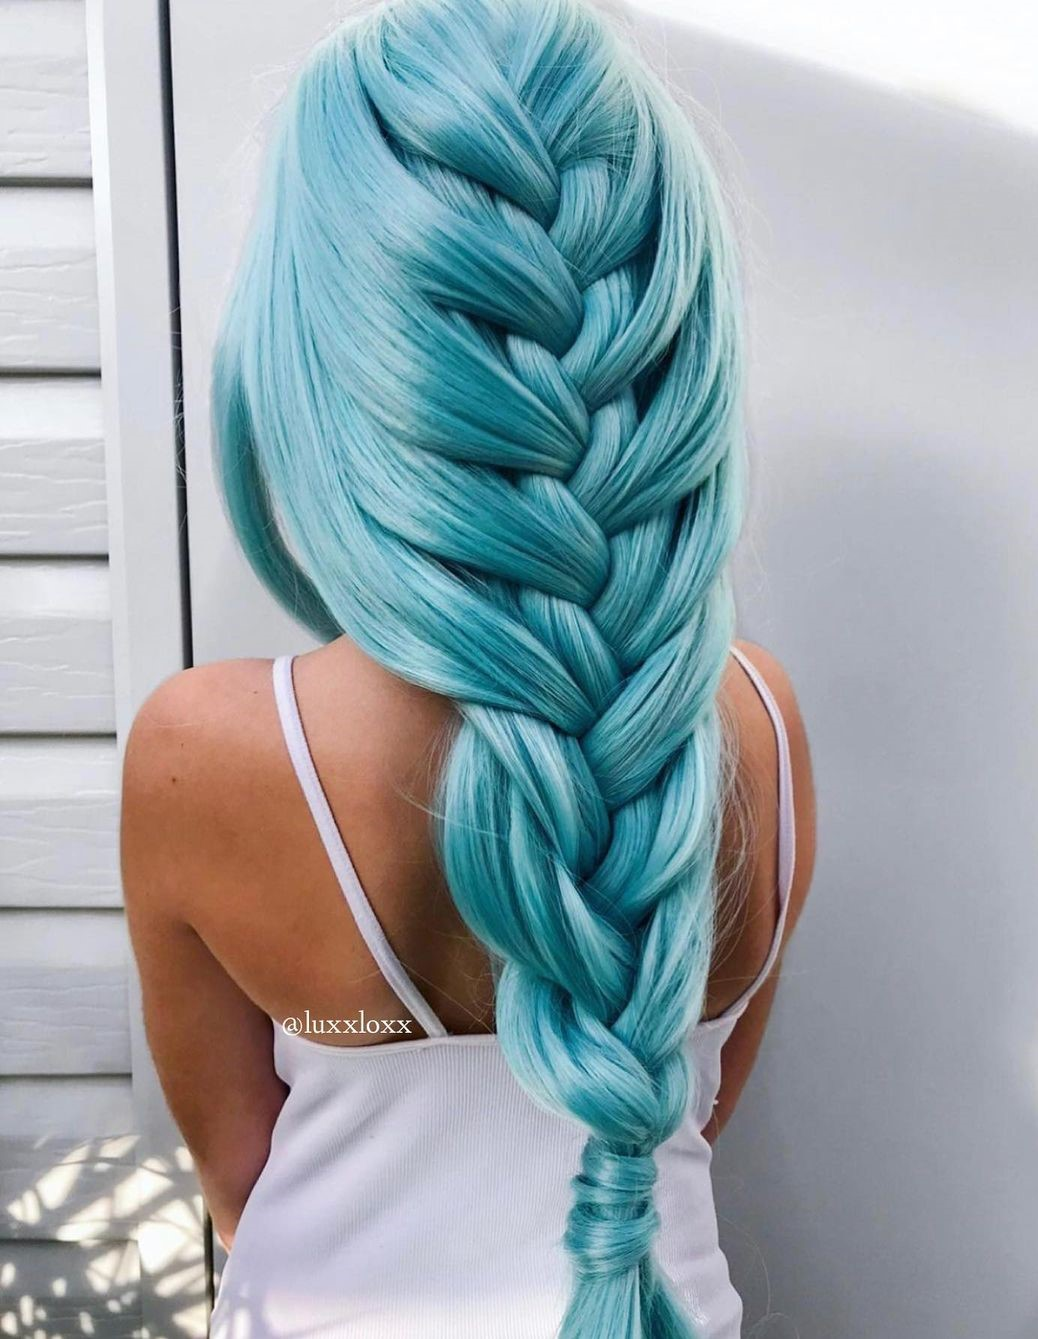 Simple Loose Braid for Turquoise Hair